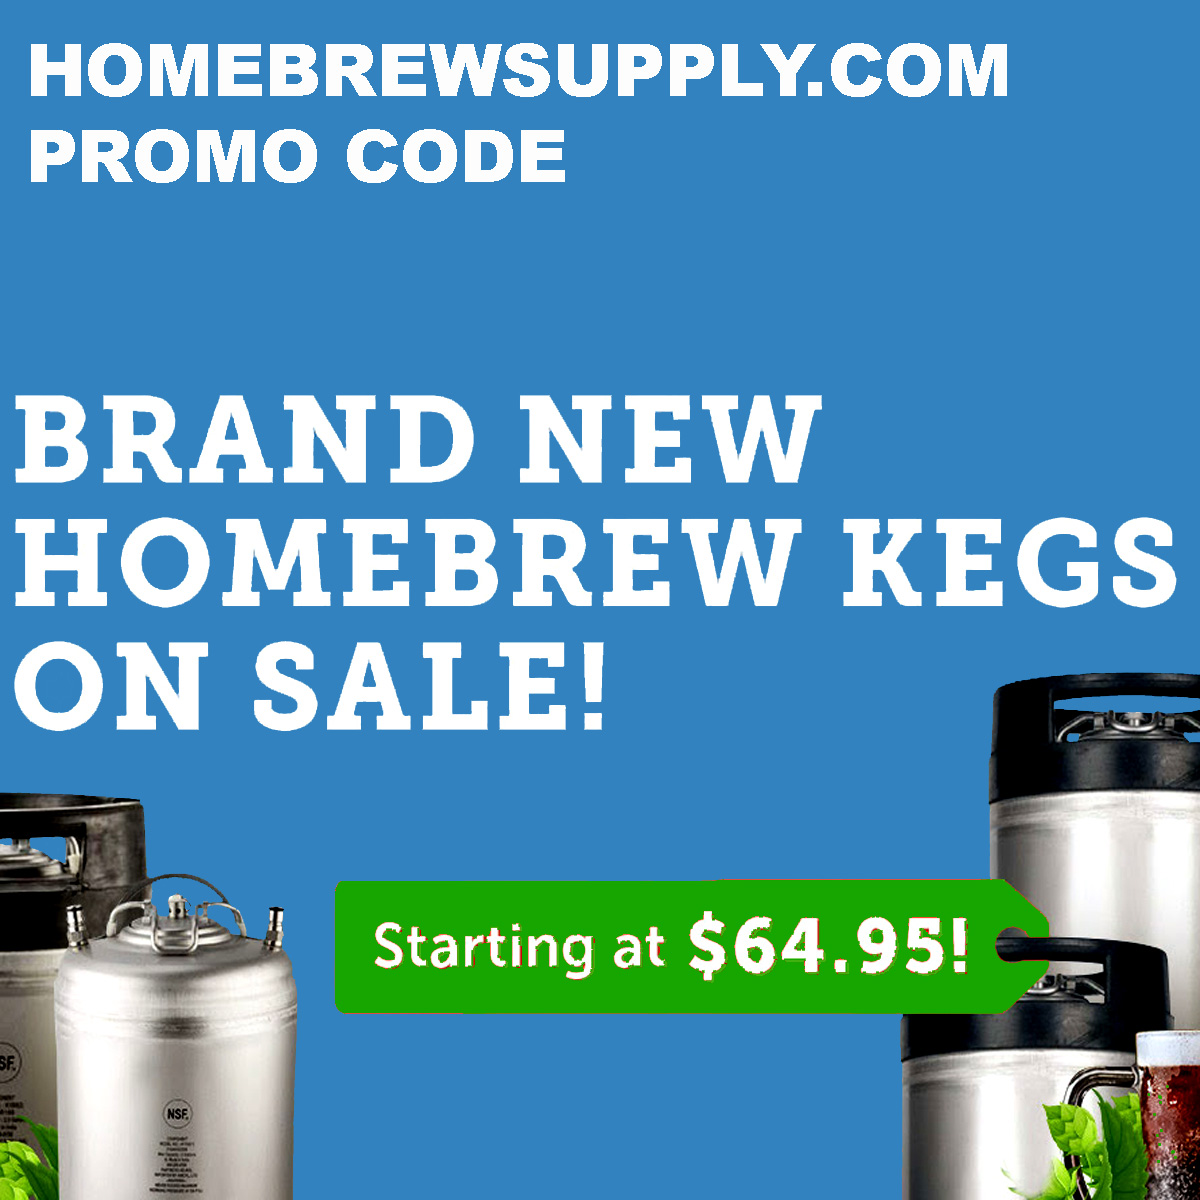 Homebrew Supply Save Up To $25 On Homebrewing Kegs At HomebrewSupply.com Coupon Code